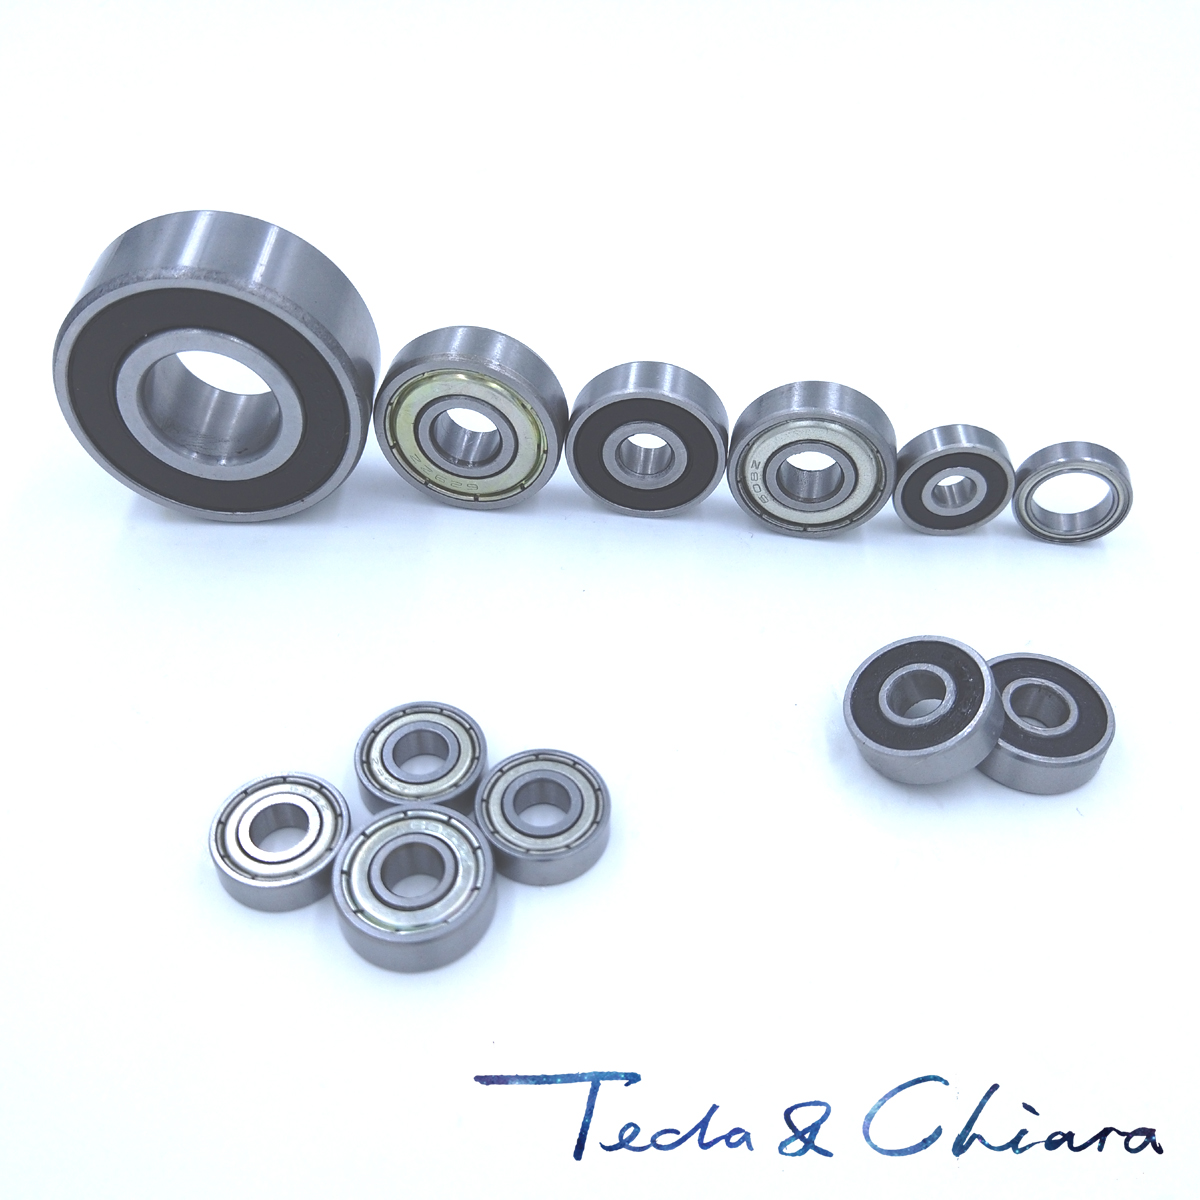 10Pcs 6701 6701ZZ <font><b>6701RS</b></font> 6701-2Z 6701Z 6701-2RS ZZ RS RZ 2RZ Deep Groove Ball Bearings 12 x 18 x 4mm High Quality image